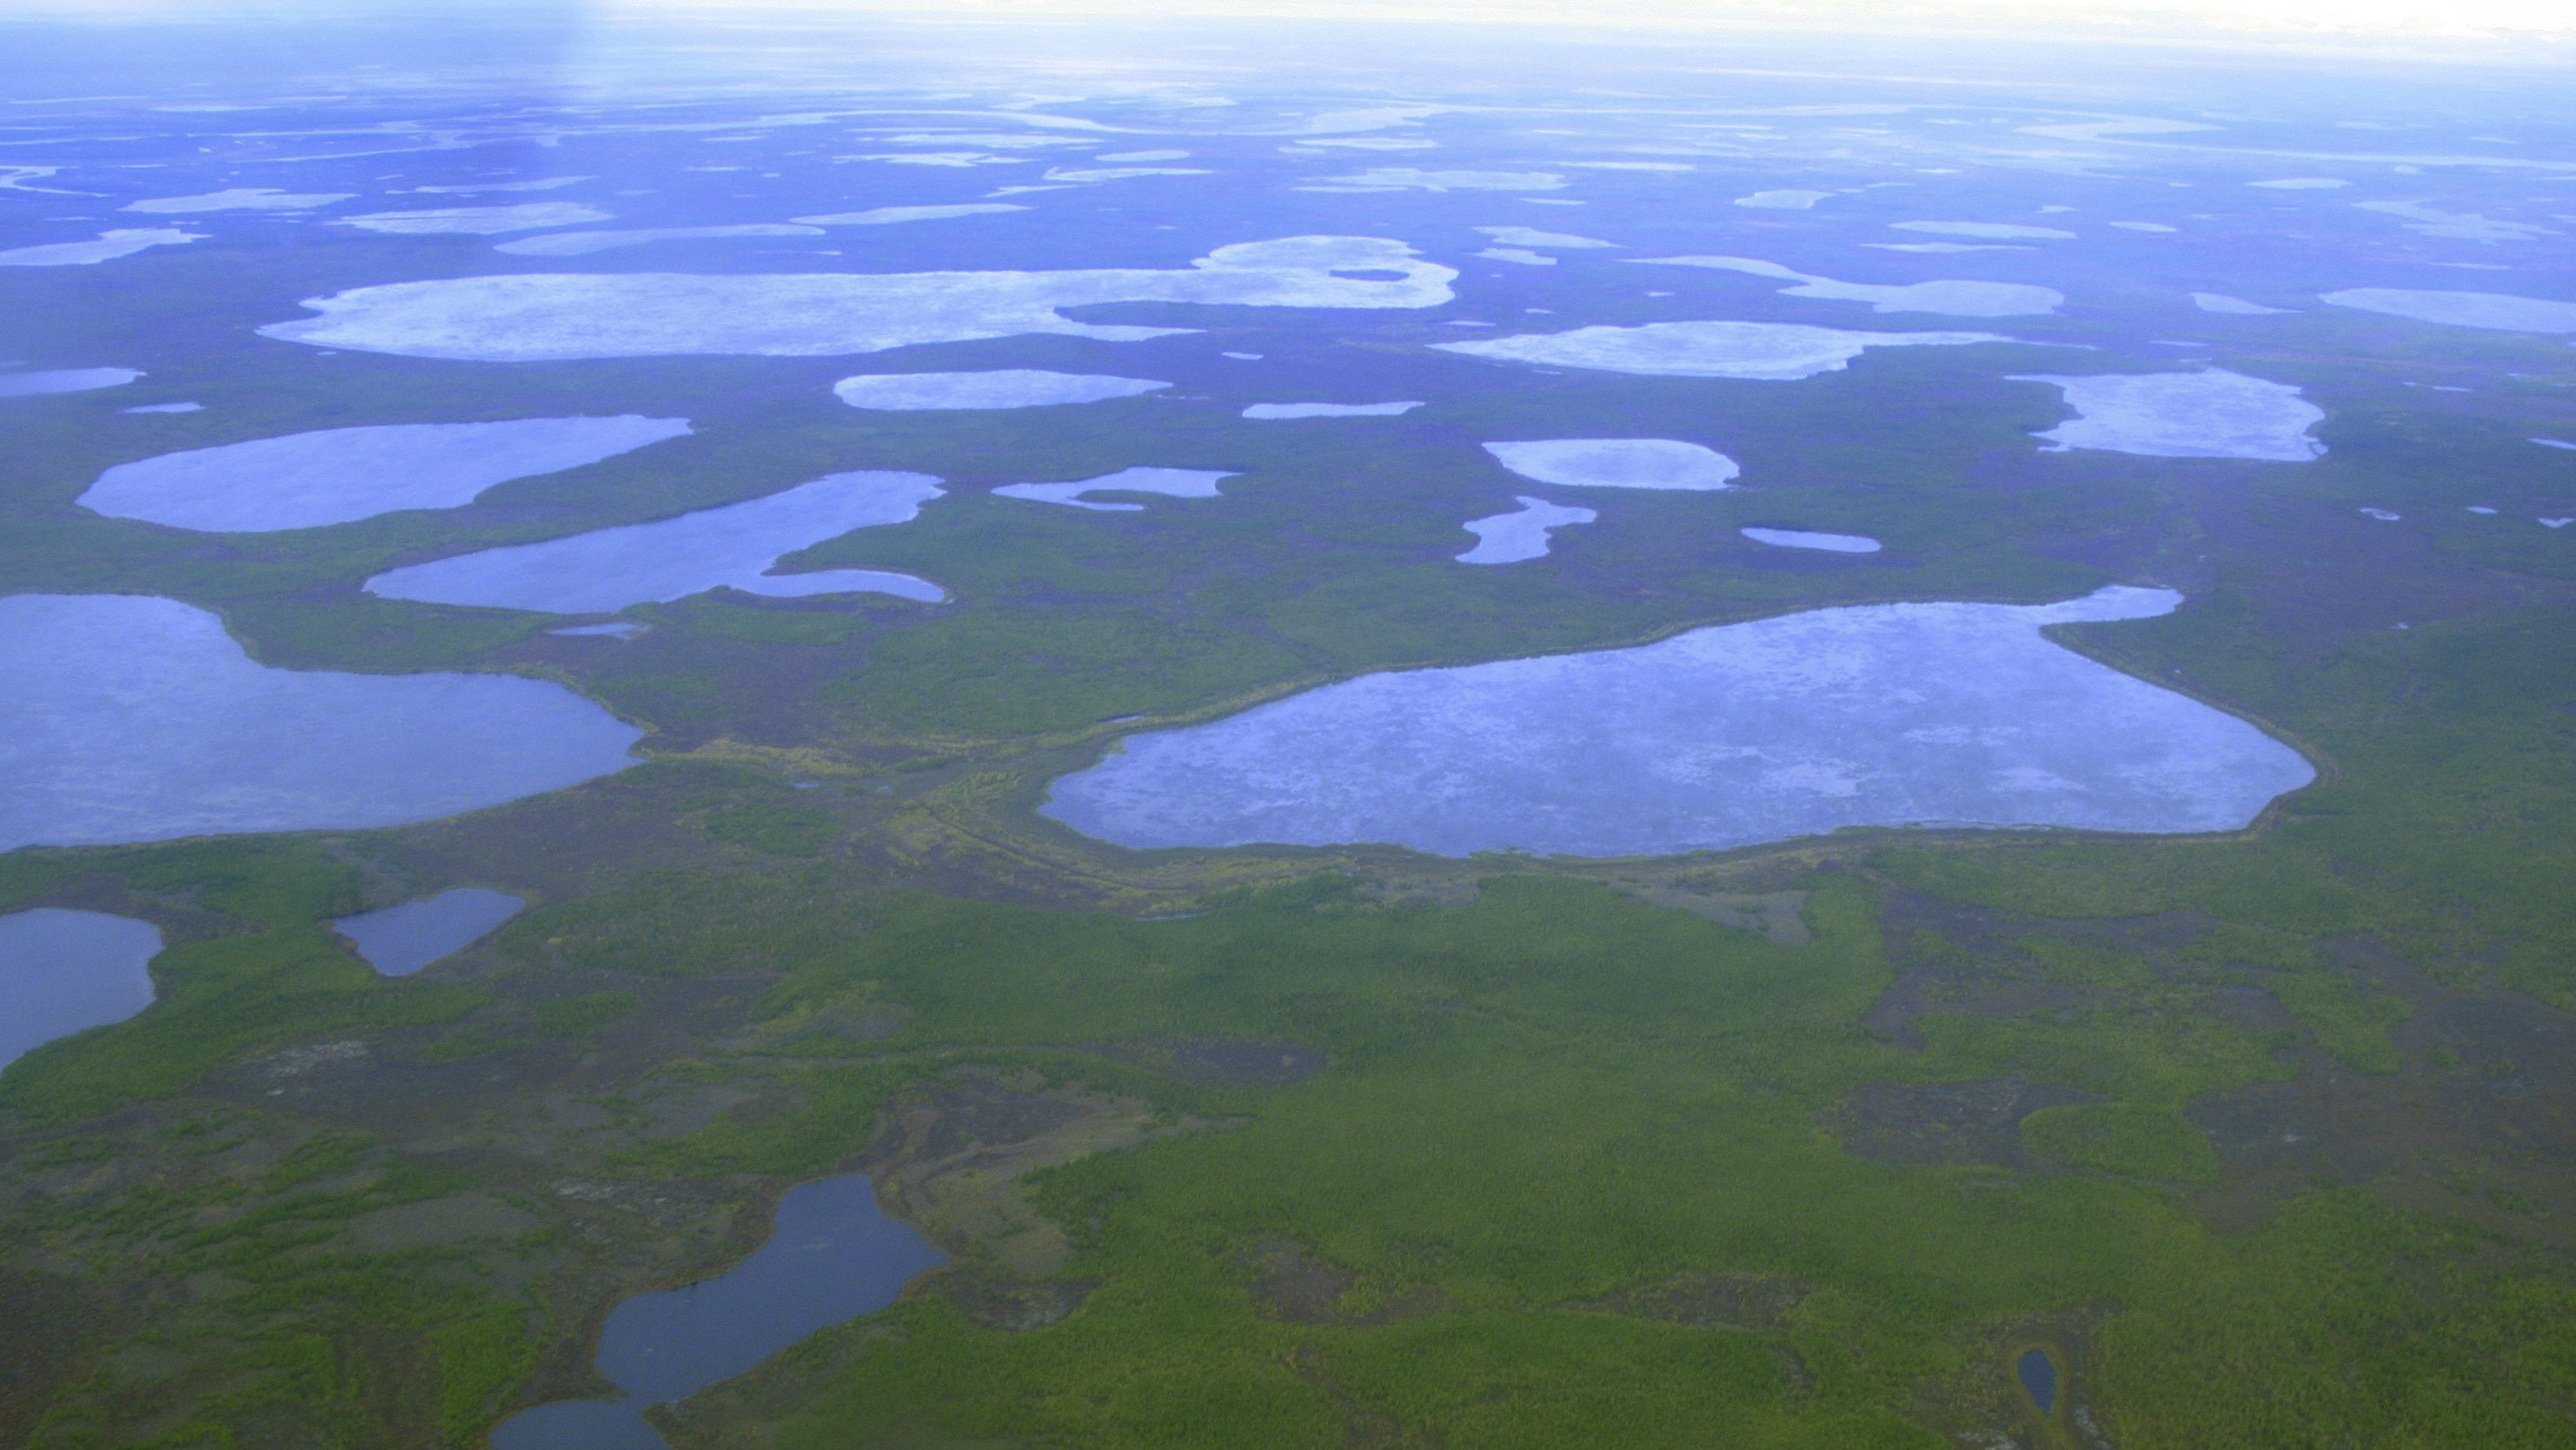 """As the permafrost thaws, it often forms """"lakes"""" of meltwater, which accelerate the thawing further. Now we know there is lots of mercury in there too."""